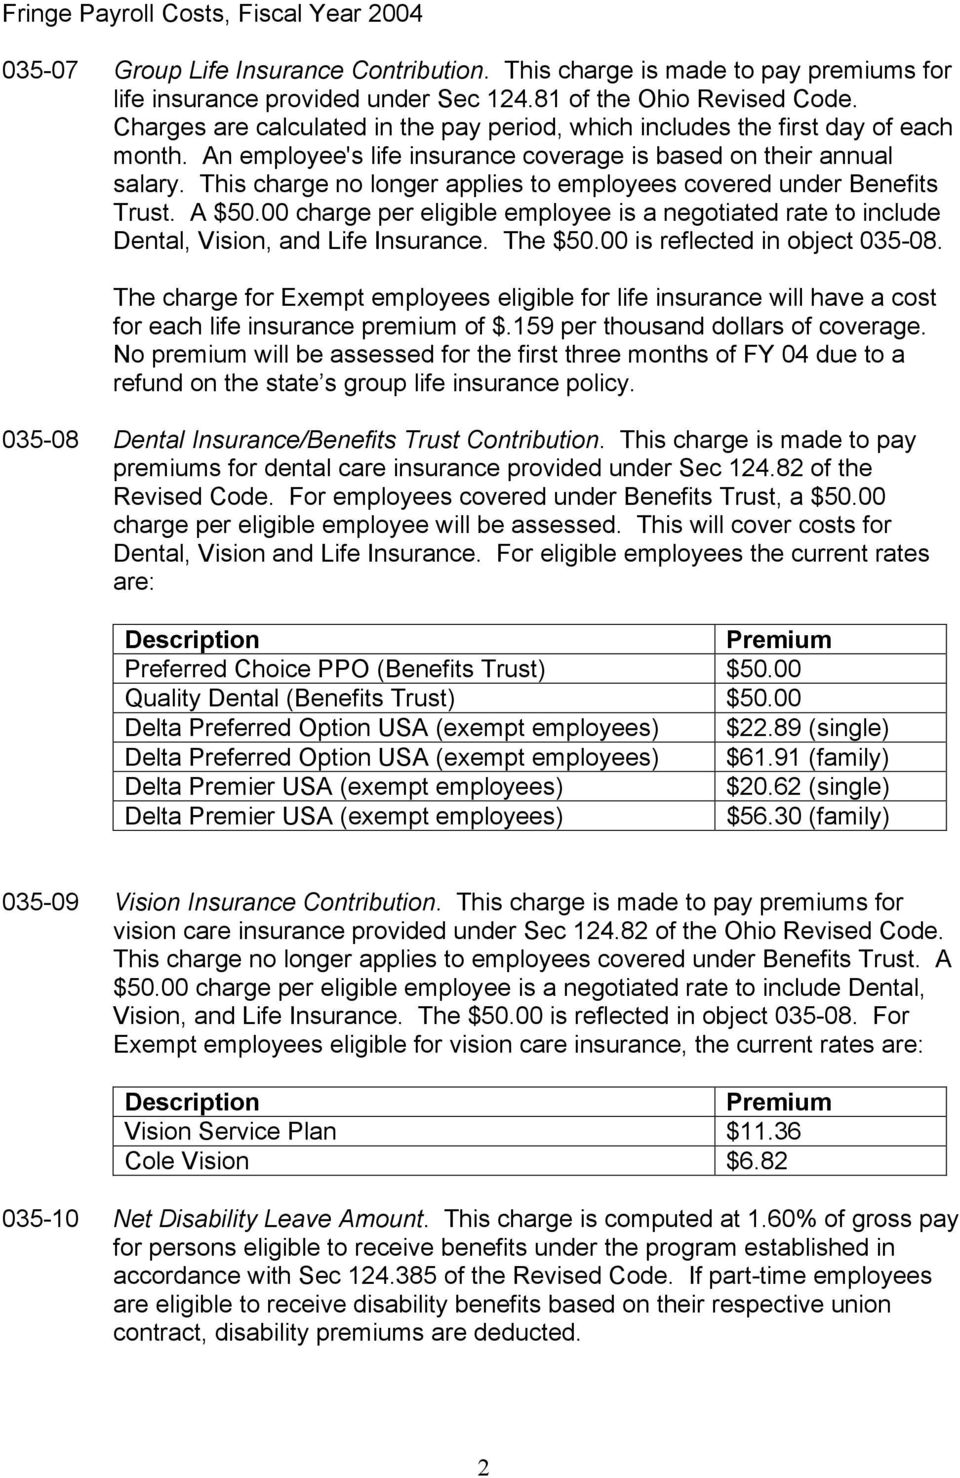 This charge no longer applies to employees covered under Benefits Trust. A $50.00 charge per eligible employee is a negotiated rate to include Dental, Vision, and Life Insurance. The $50.